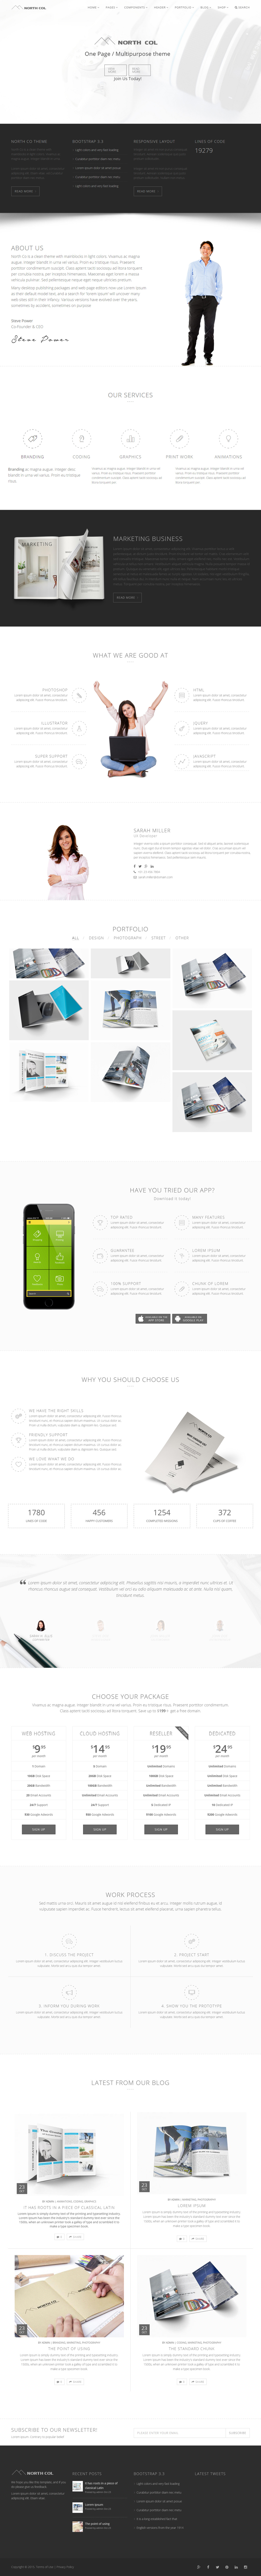 North Col is Premium Responsive Retina Parallax #Drupal Multipurpose Theme. #Bootstrap3 Framework. Video Background. #OnePage. Test free demo at: http://www.responsivemiracle.com/cms/north-col-premium-responsive-multipurpose-drupal-theme/